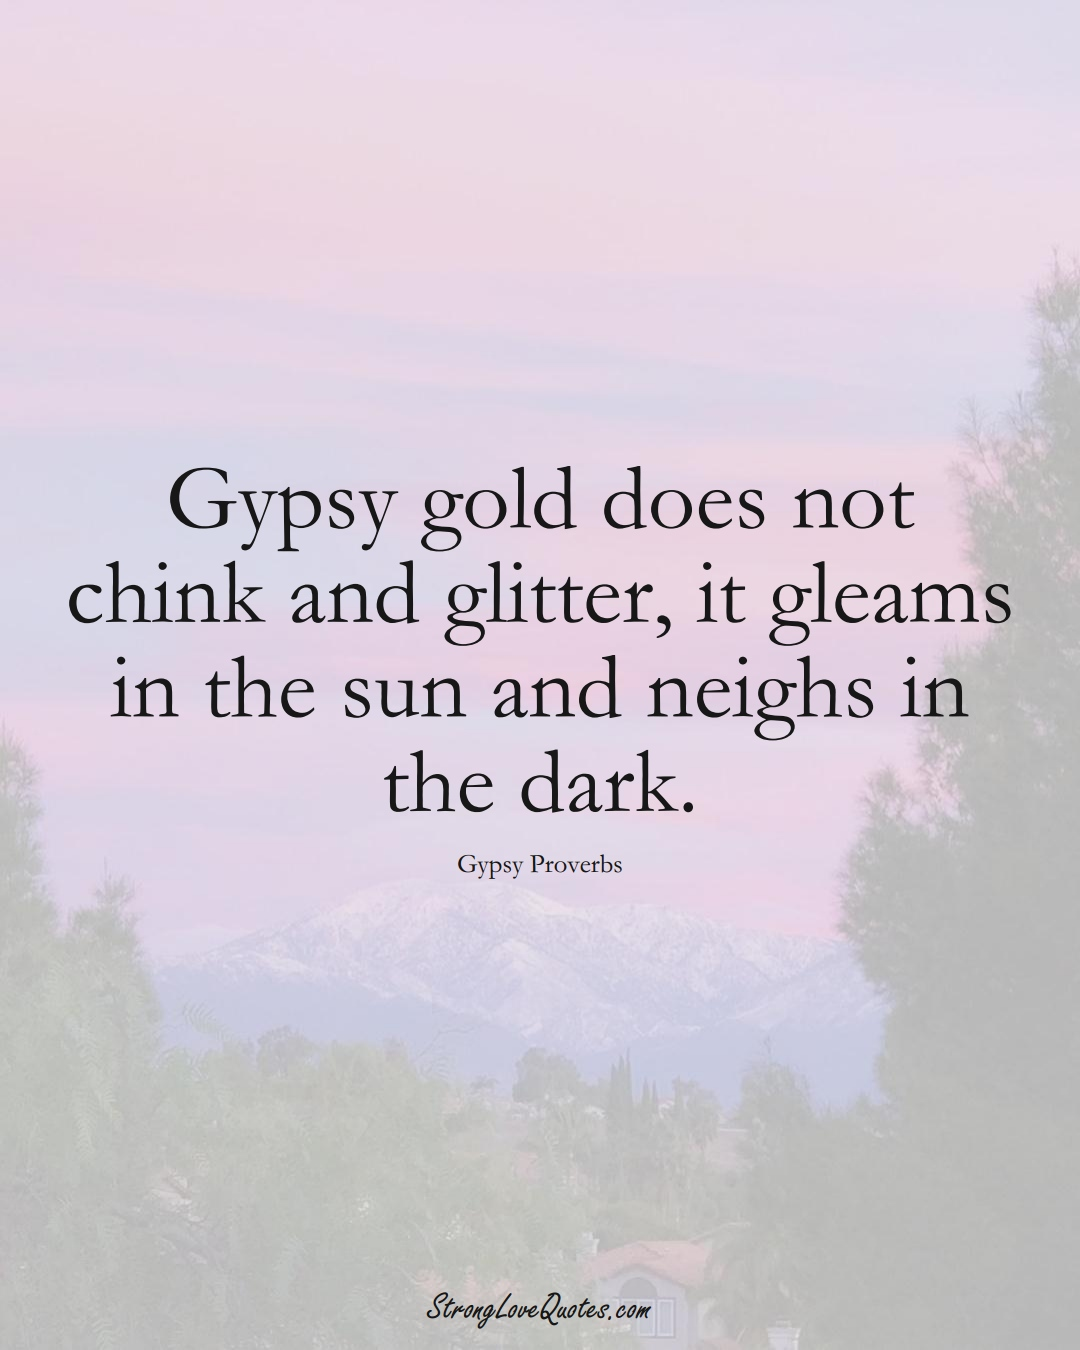 Gypsy gold does not chink and glitter, it gleams in the sun and neighs in the dark. (Gypsy Sayings);  #aVarietyofCulturesSayings